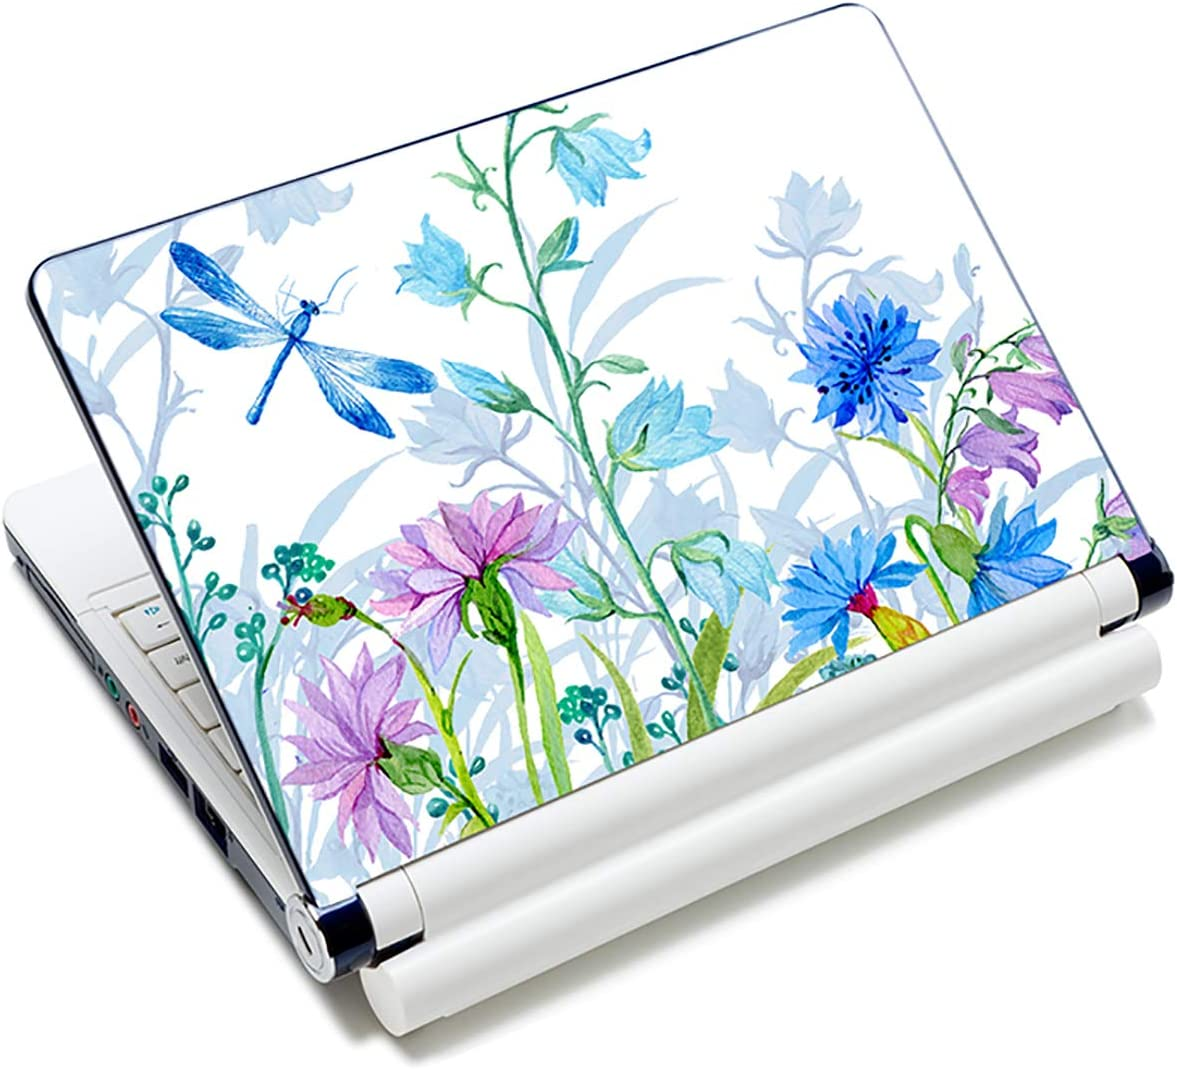 """Baocool Laptop Skin Sticker Decal,12"""" 13"""" 13.3"""" 14"""" 15"""" 15.4"""" 15.6 inch Laptop Skin Sticker Cover Art Decal Protector Notebook PC (Dragonfly & Flowers)"""